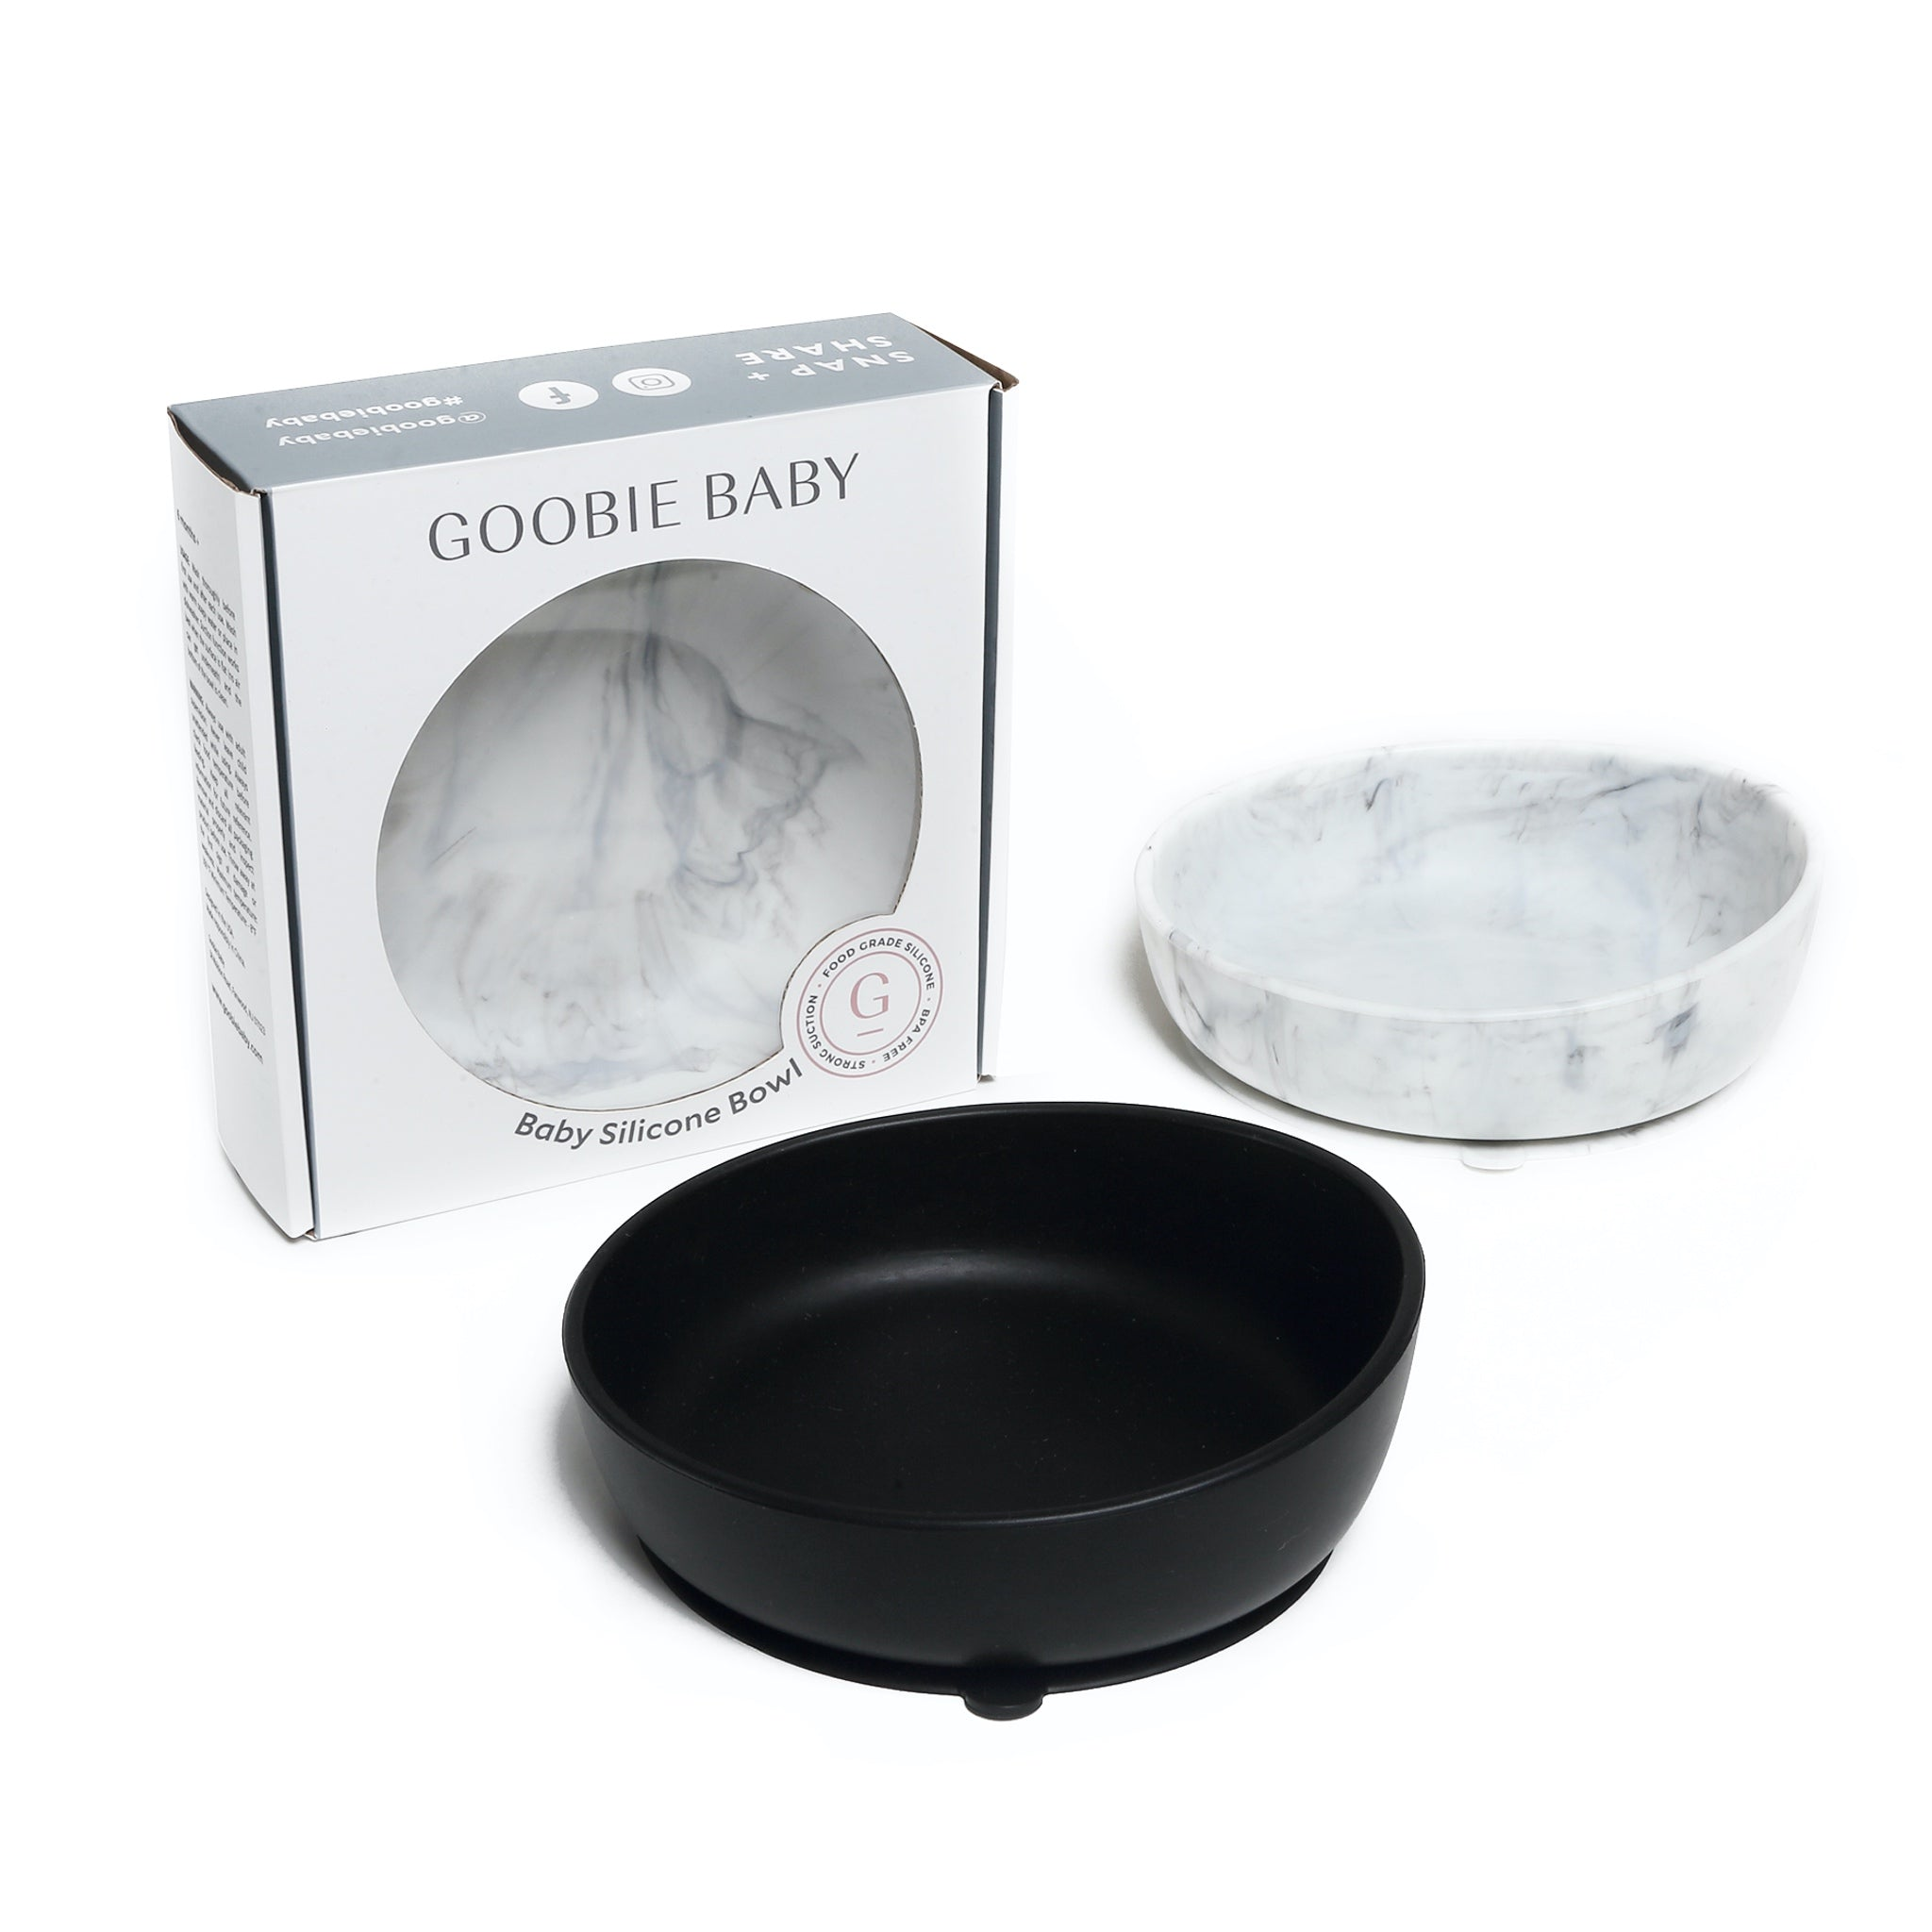 Baby Silicone Bowl Set - Black & Marble